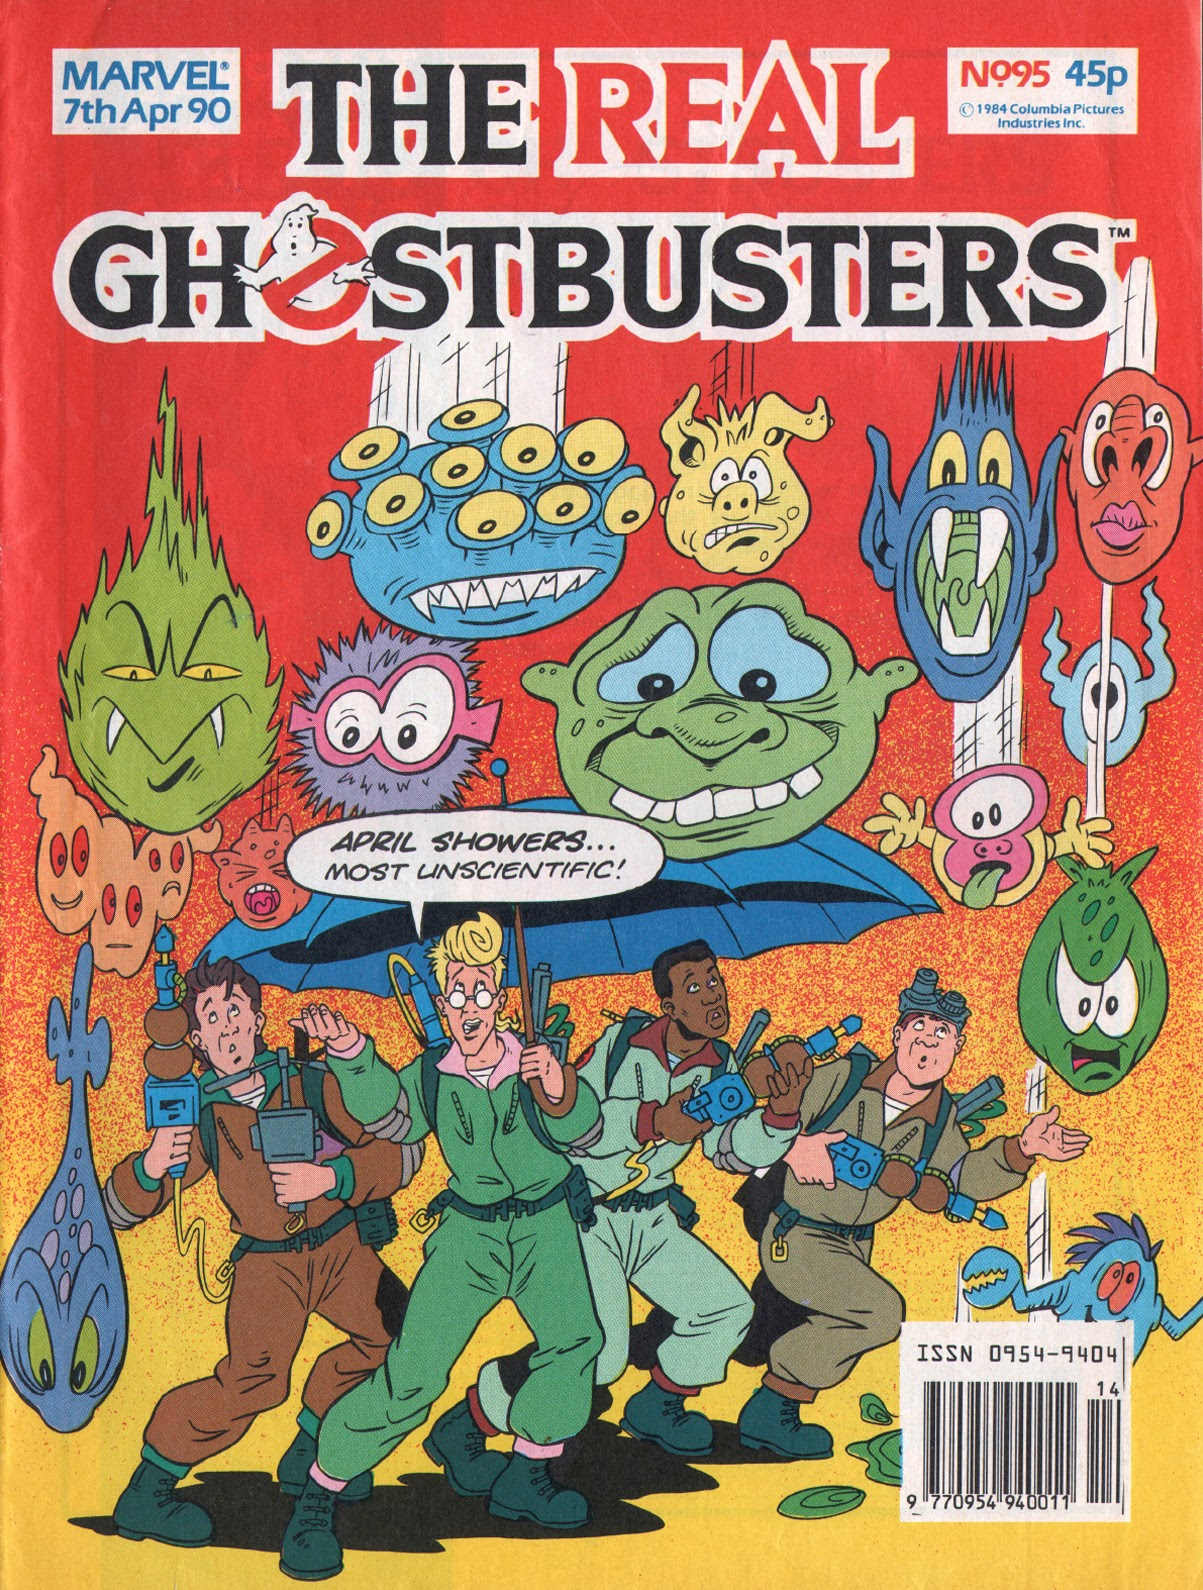 The Real Ghostbusters 95 Page 1